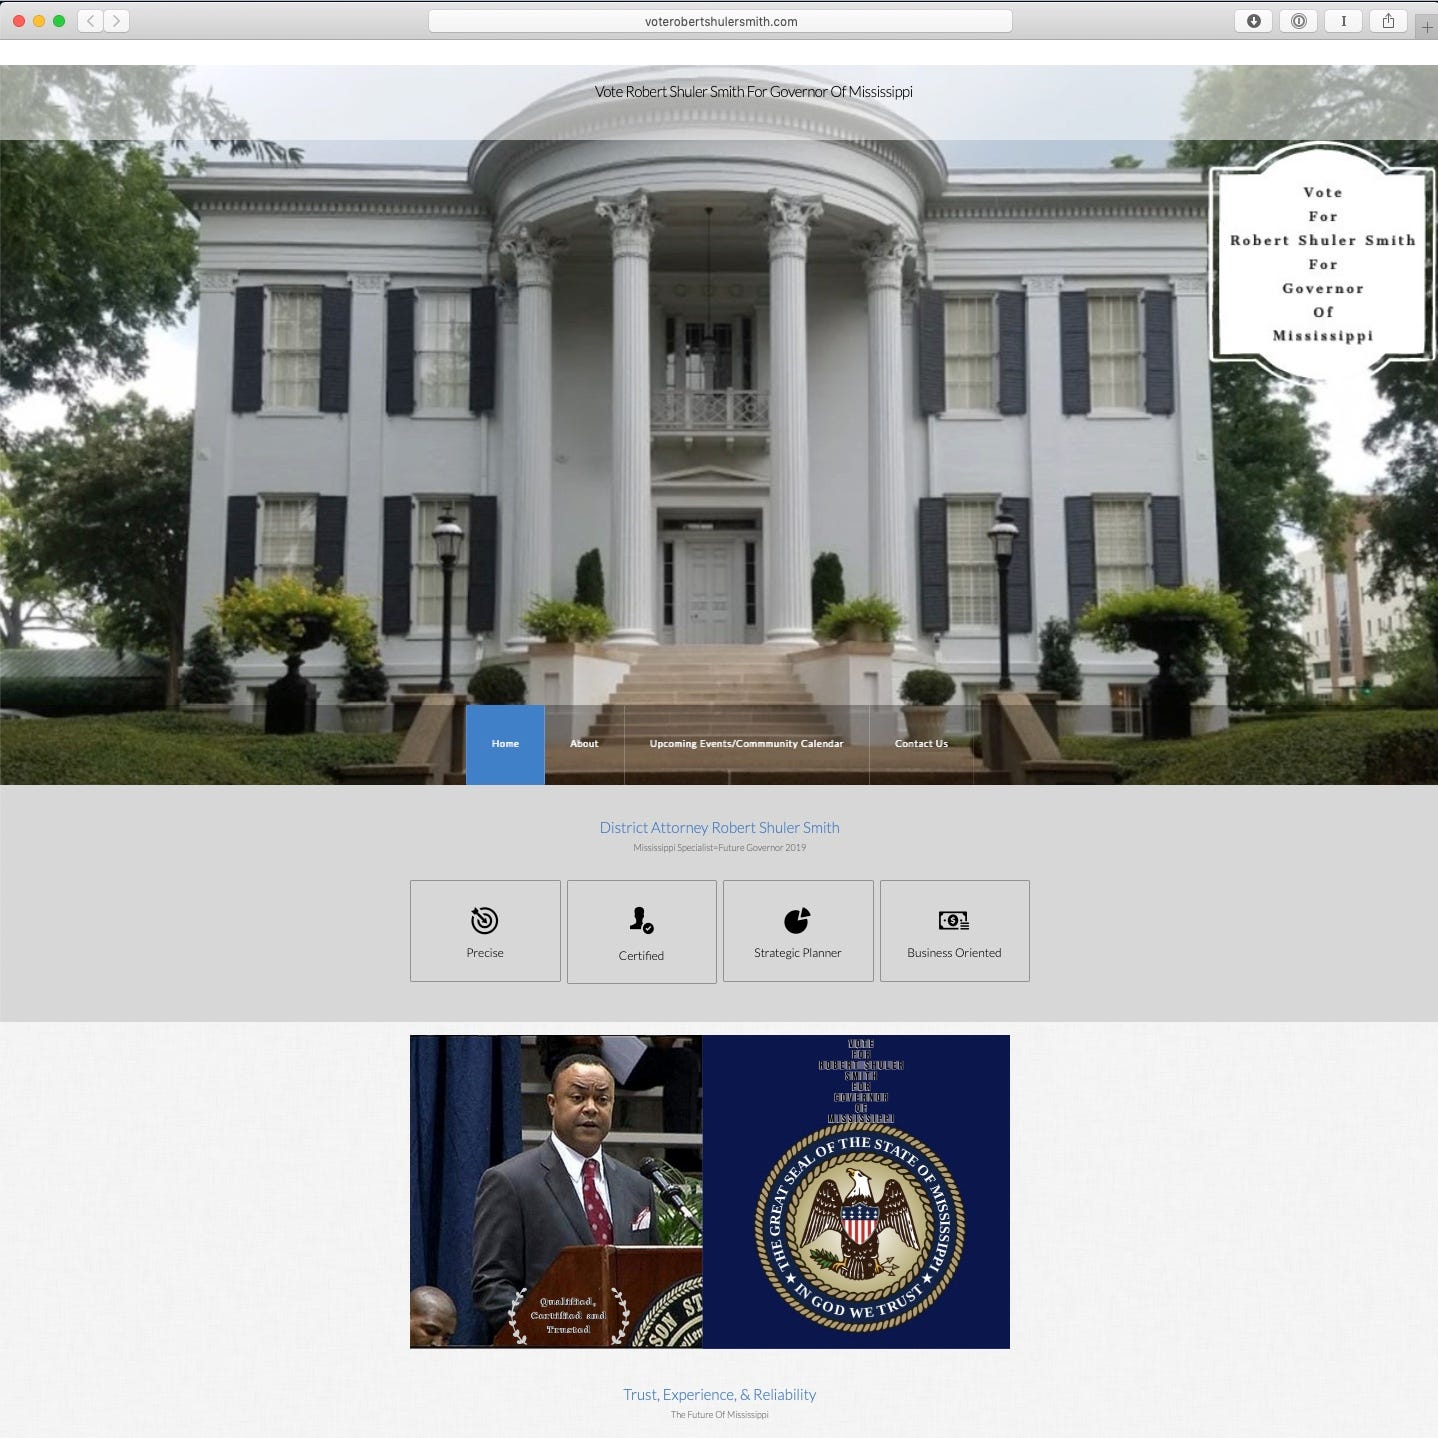 The photos of Robert Shuler Smith's supporters on his website aren't real